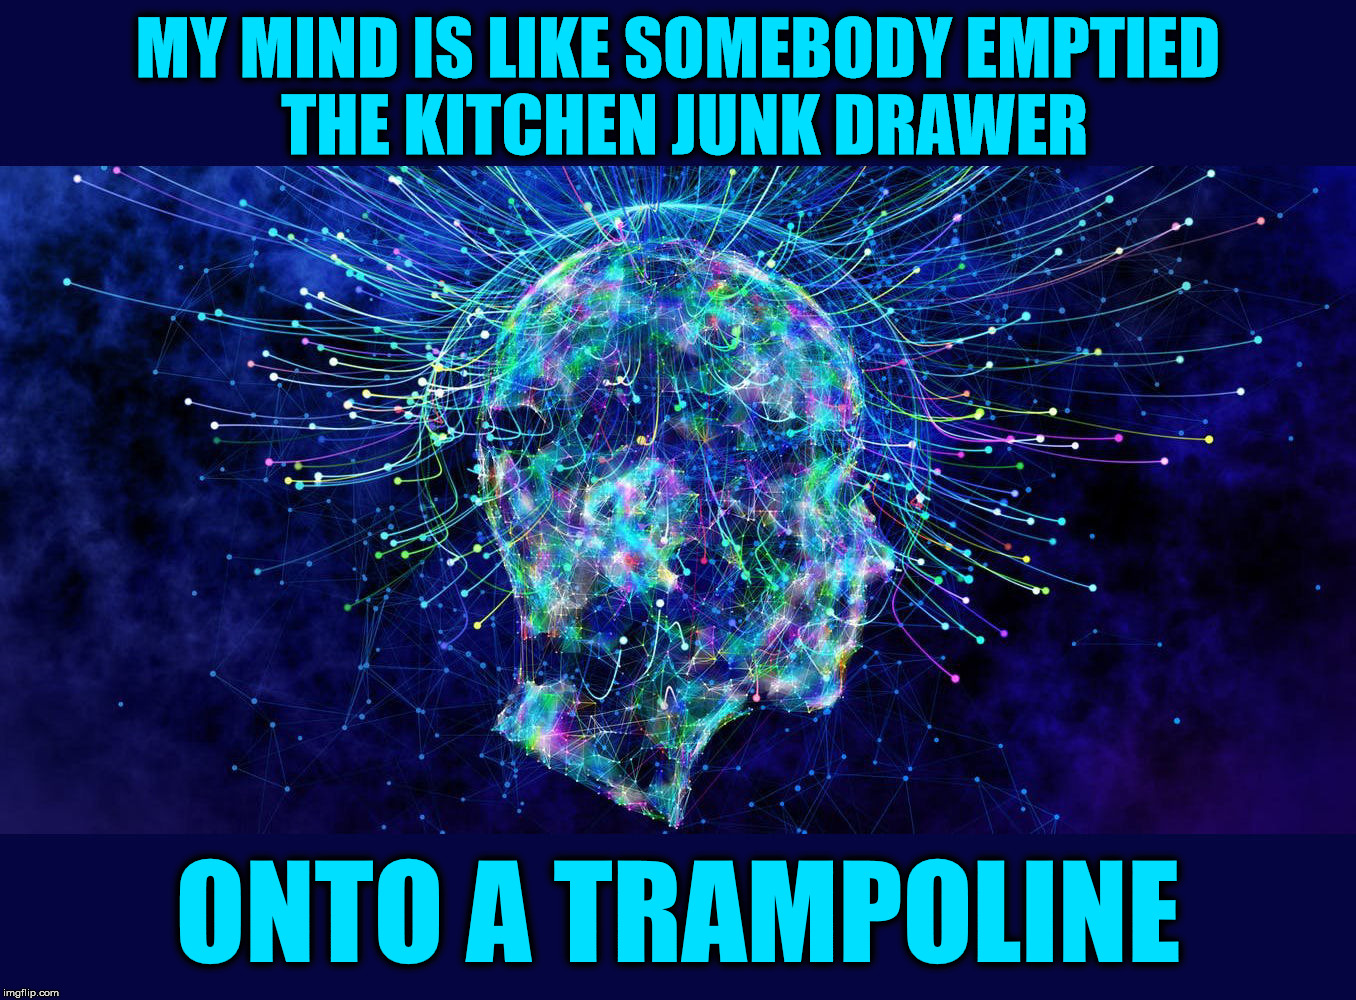 Meanwhile, in my skull | MY MIND IS LIKE SOMEBODY EMPTIED THE KITCHEN JUNK DRAWER ONTO A TRAMPOLINE | image tagged in mental thought | made w/ Imgflip meme maker